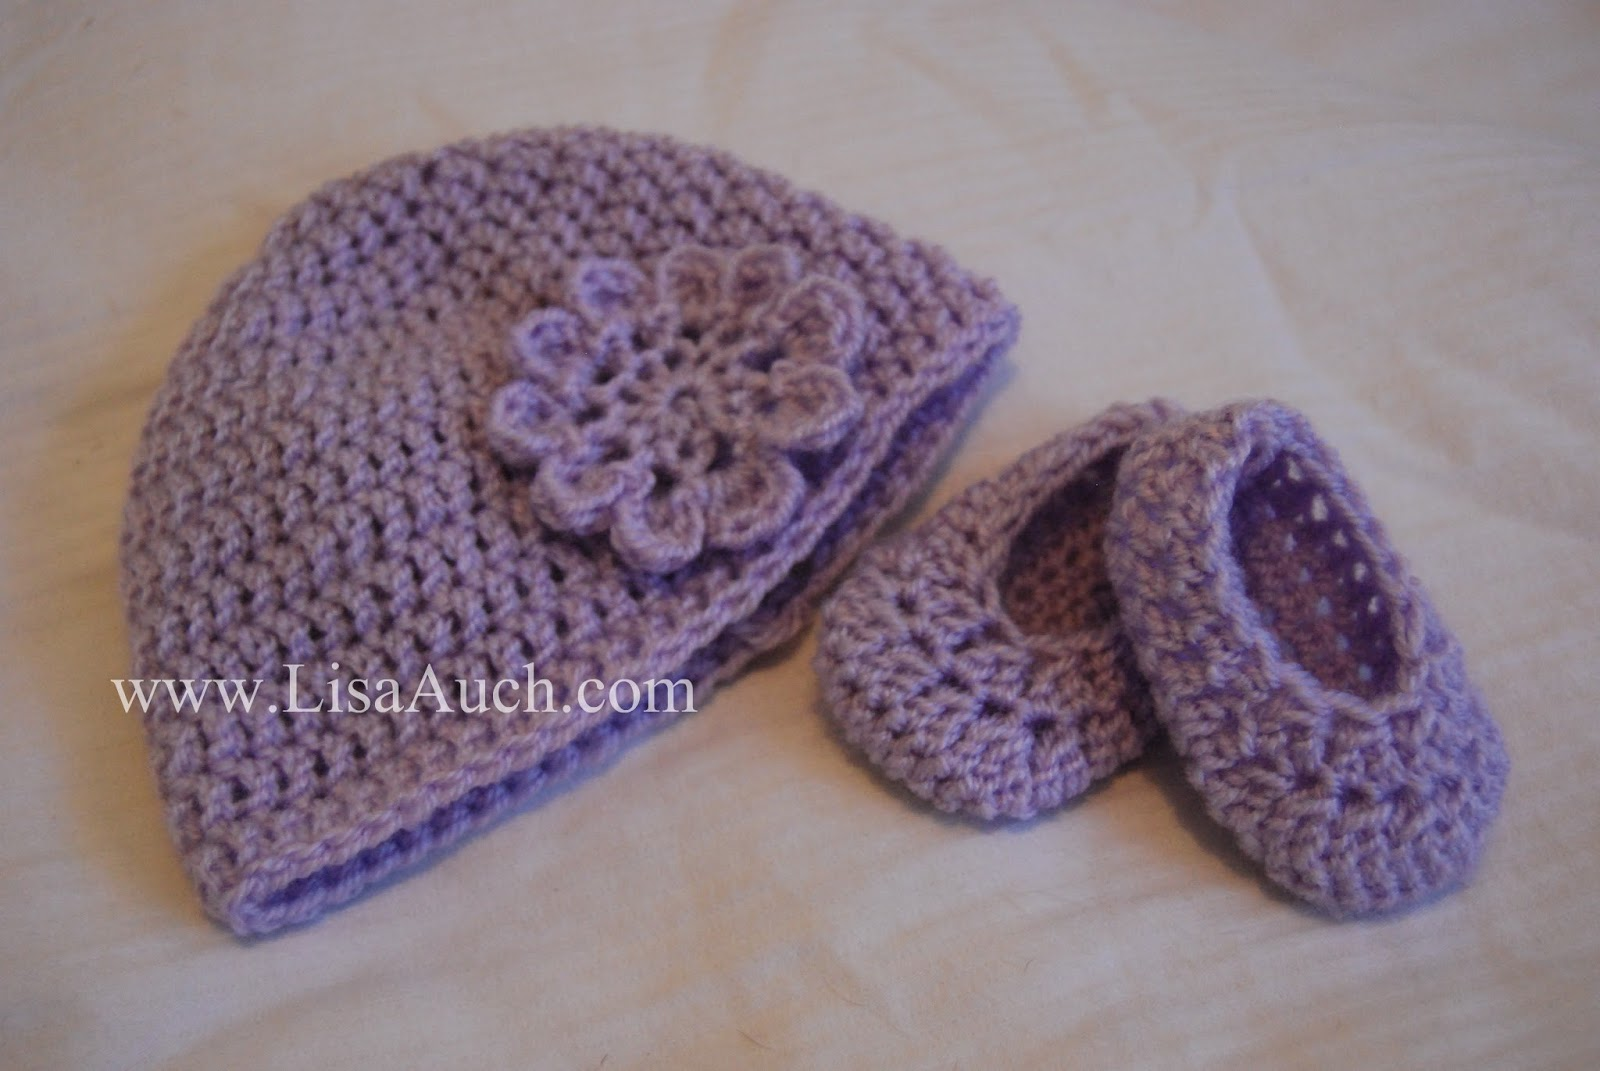 Free crochet pattern for baby toddler and child hat booties free crochet pattern for baby toddler and child hat and how to crochet matching baby booties 3 sizes baby toddler childeasy bankloansurffo Choice Image